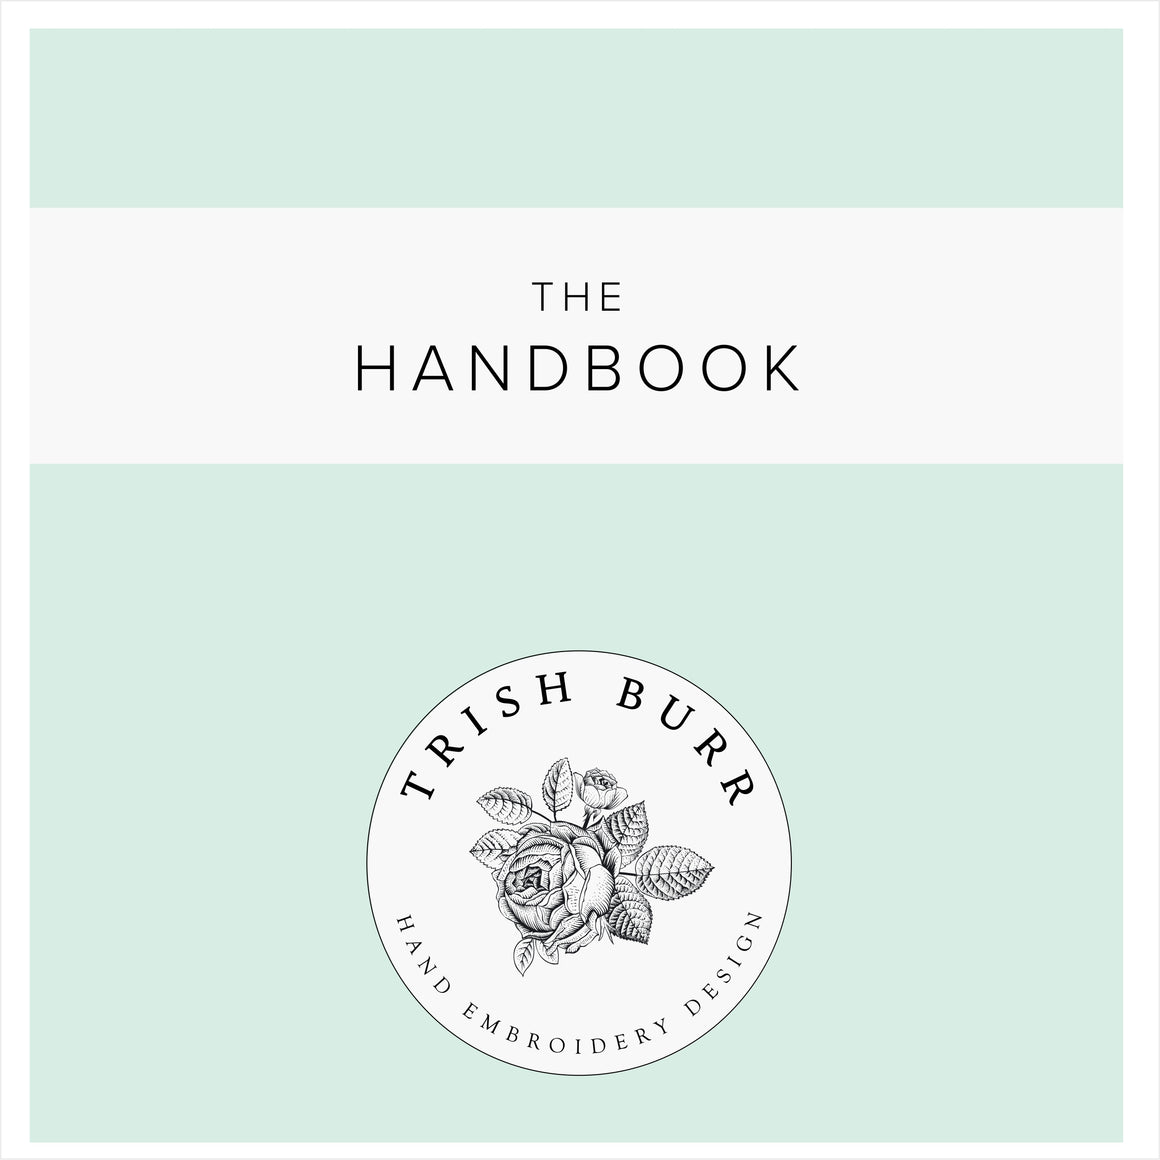 THE HANDBOOK new edition